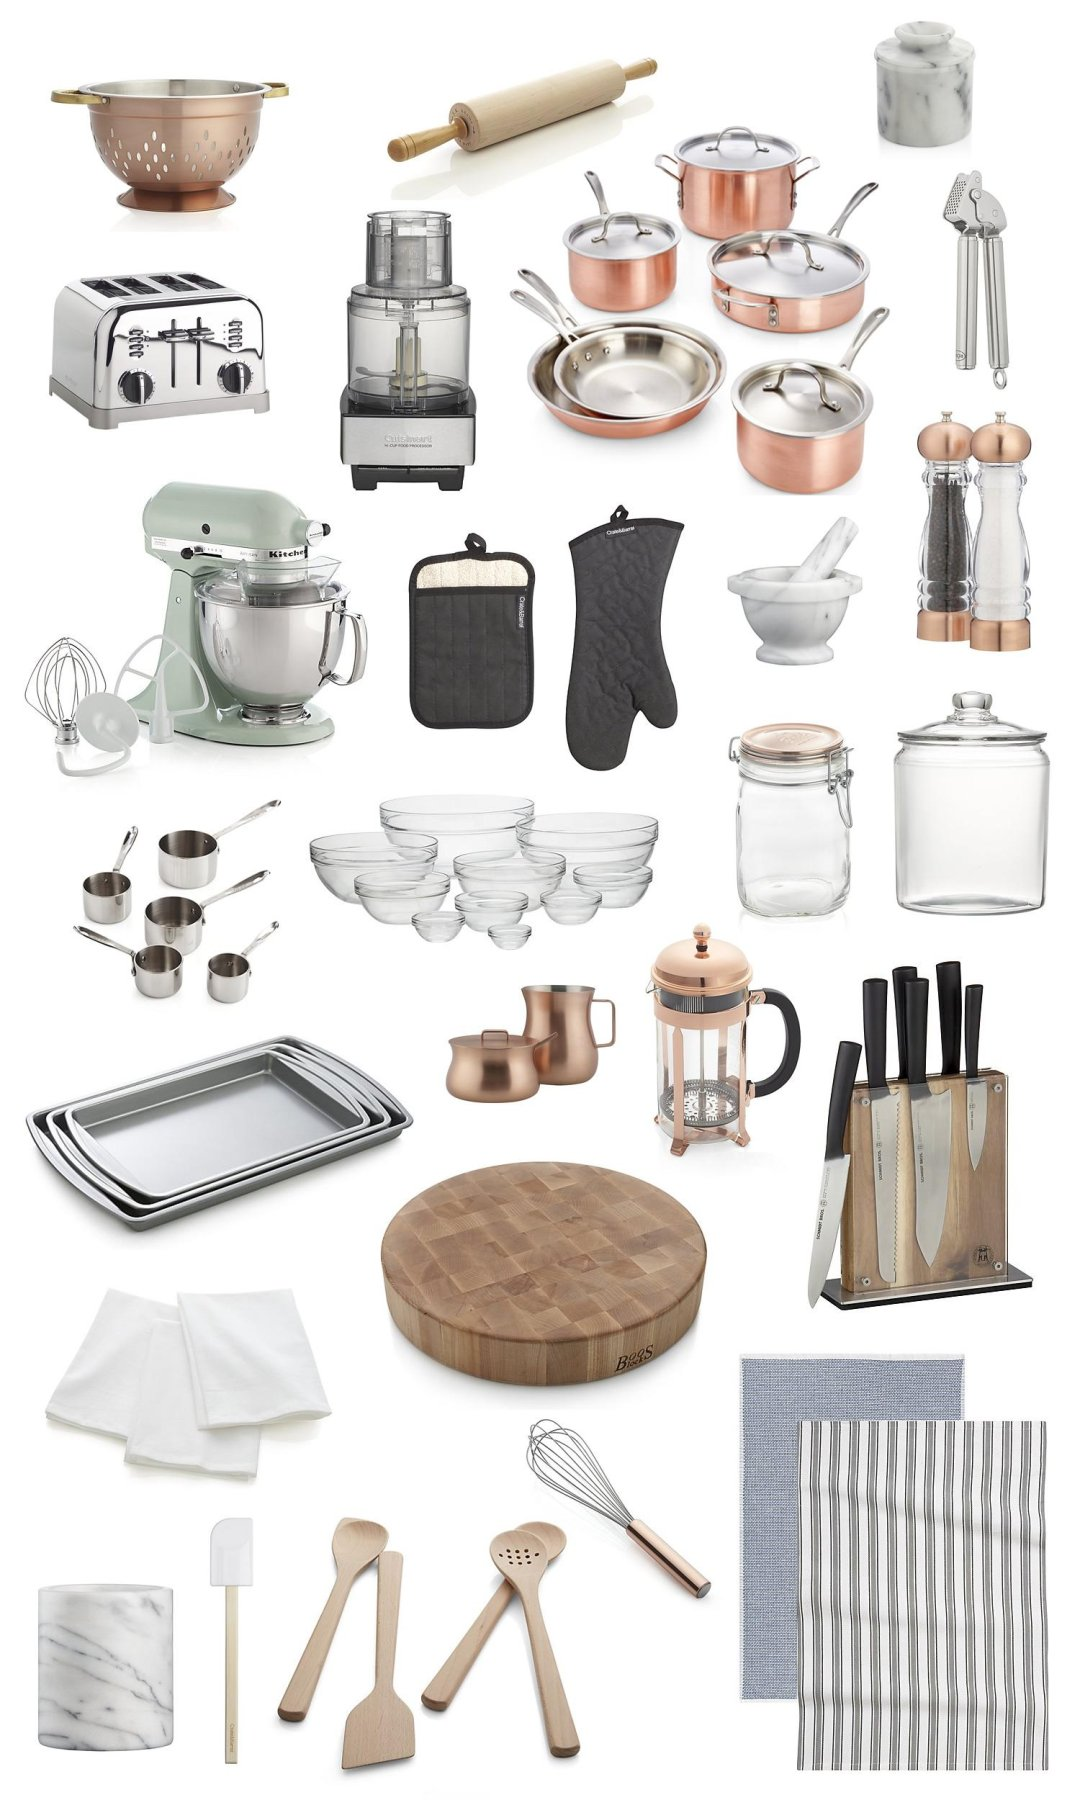 Collection of copper, glass and stainless steel kitchen accessories